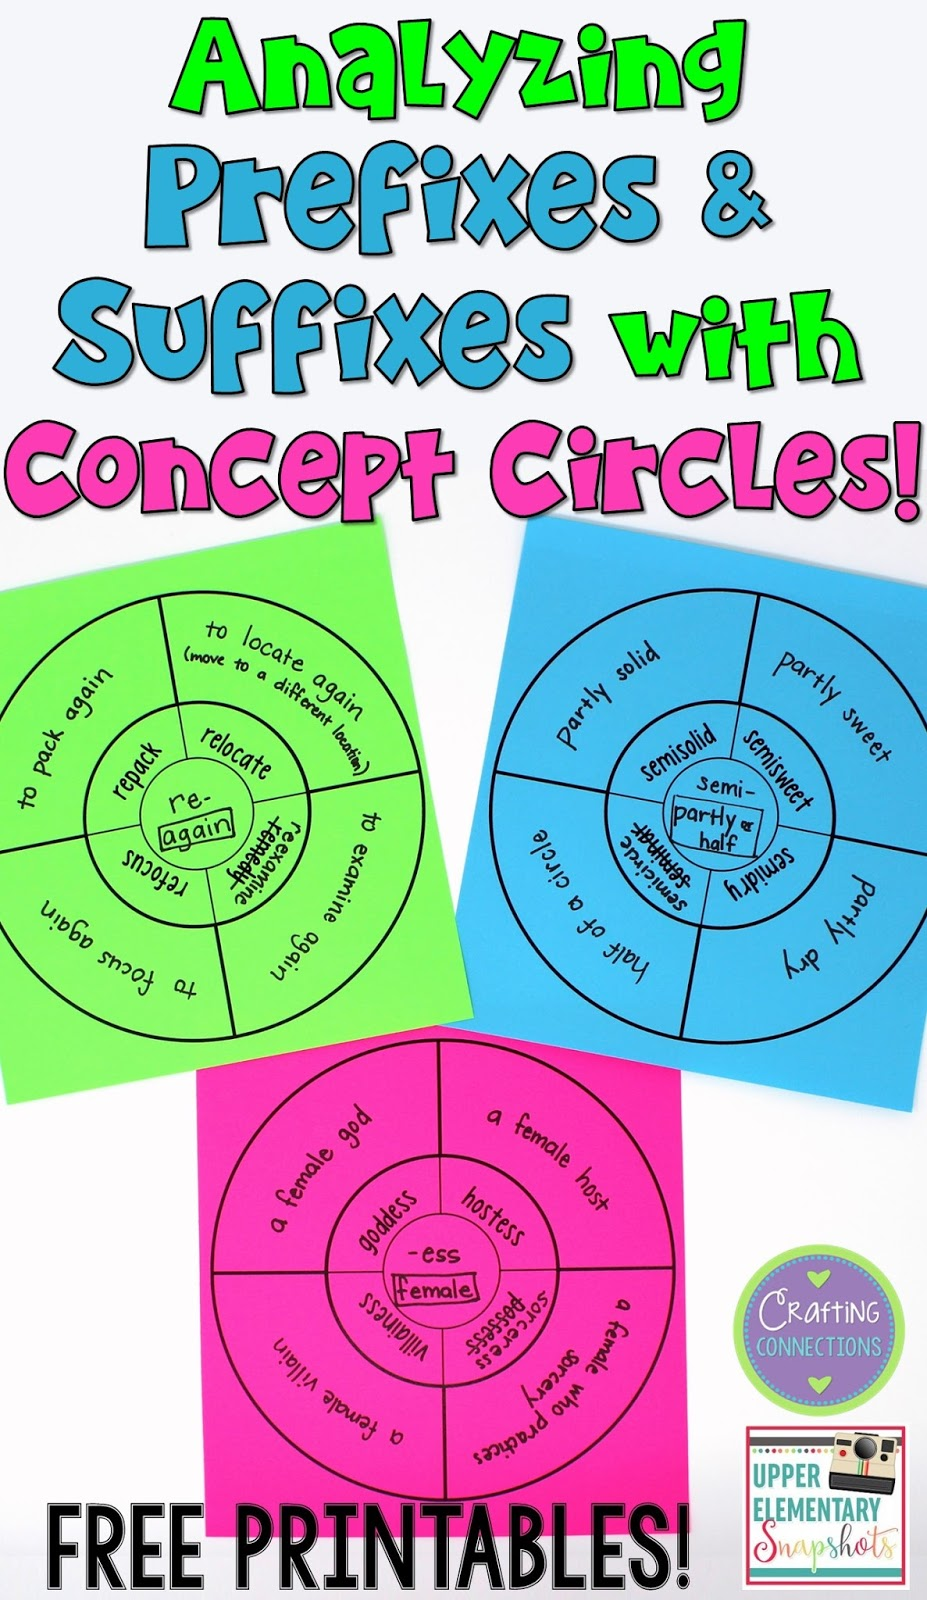 small resolution of Using Concept Circles to Analyze Prefixes and Suffixes   Upper Elementary  Snapshots